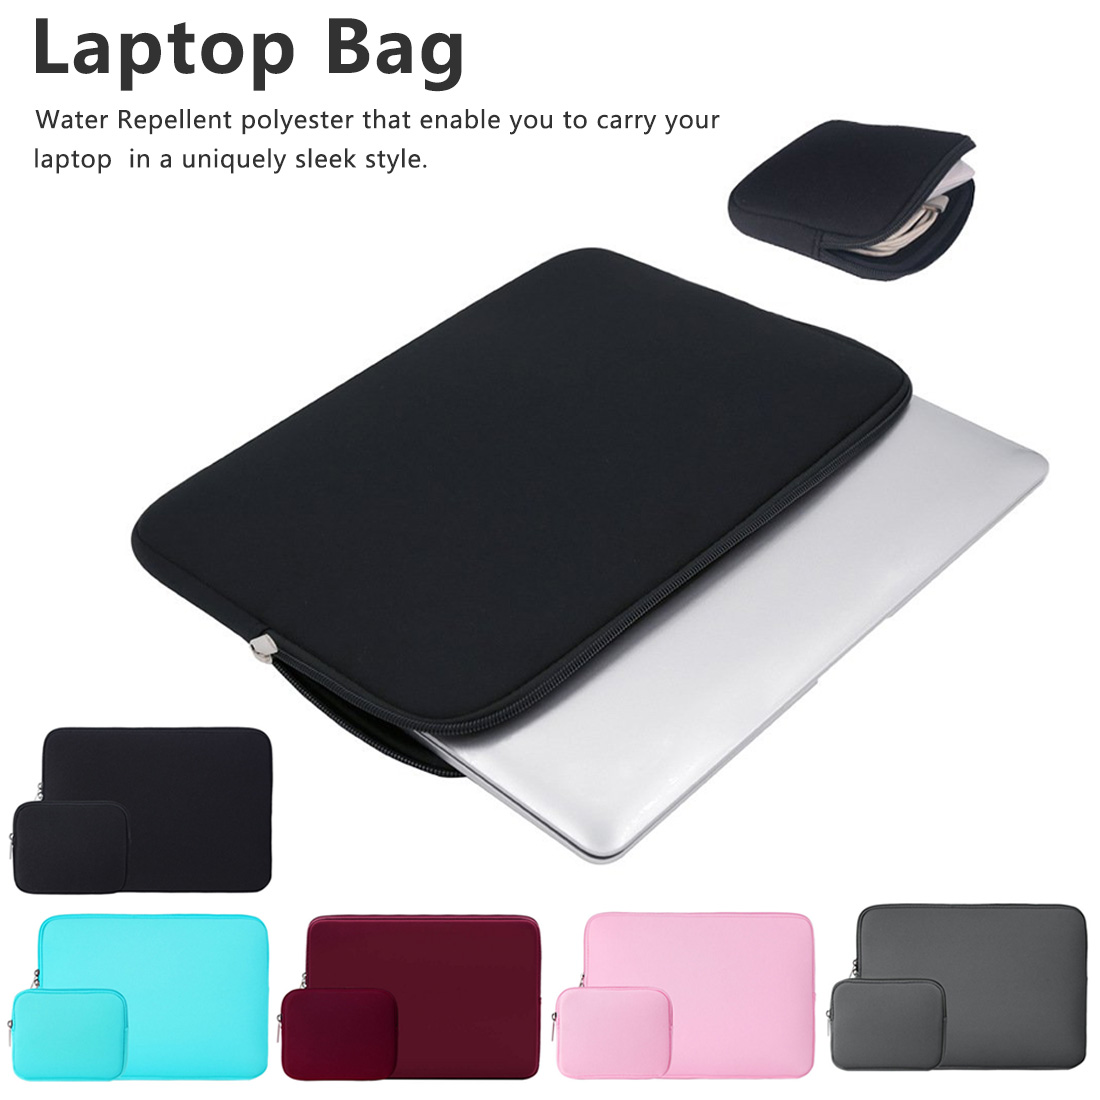 Laptop For Asus Acer HP Lenovo 11 13.3 14 15.6 inch for Macbook Air 11 13/Pro 13 15 Neoprene Water Repellent Sleeve Cases